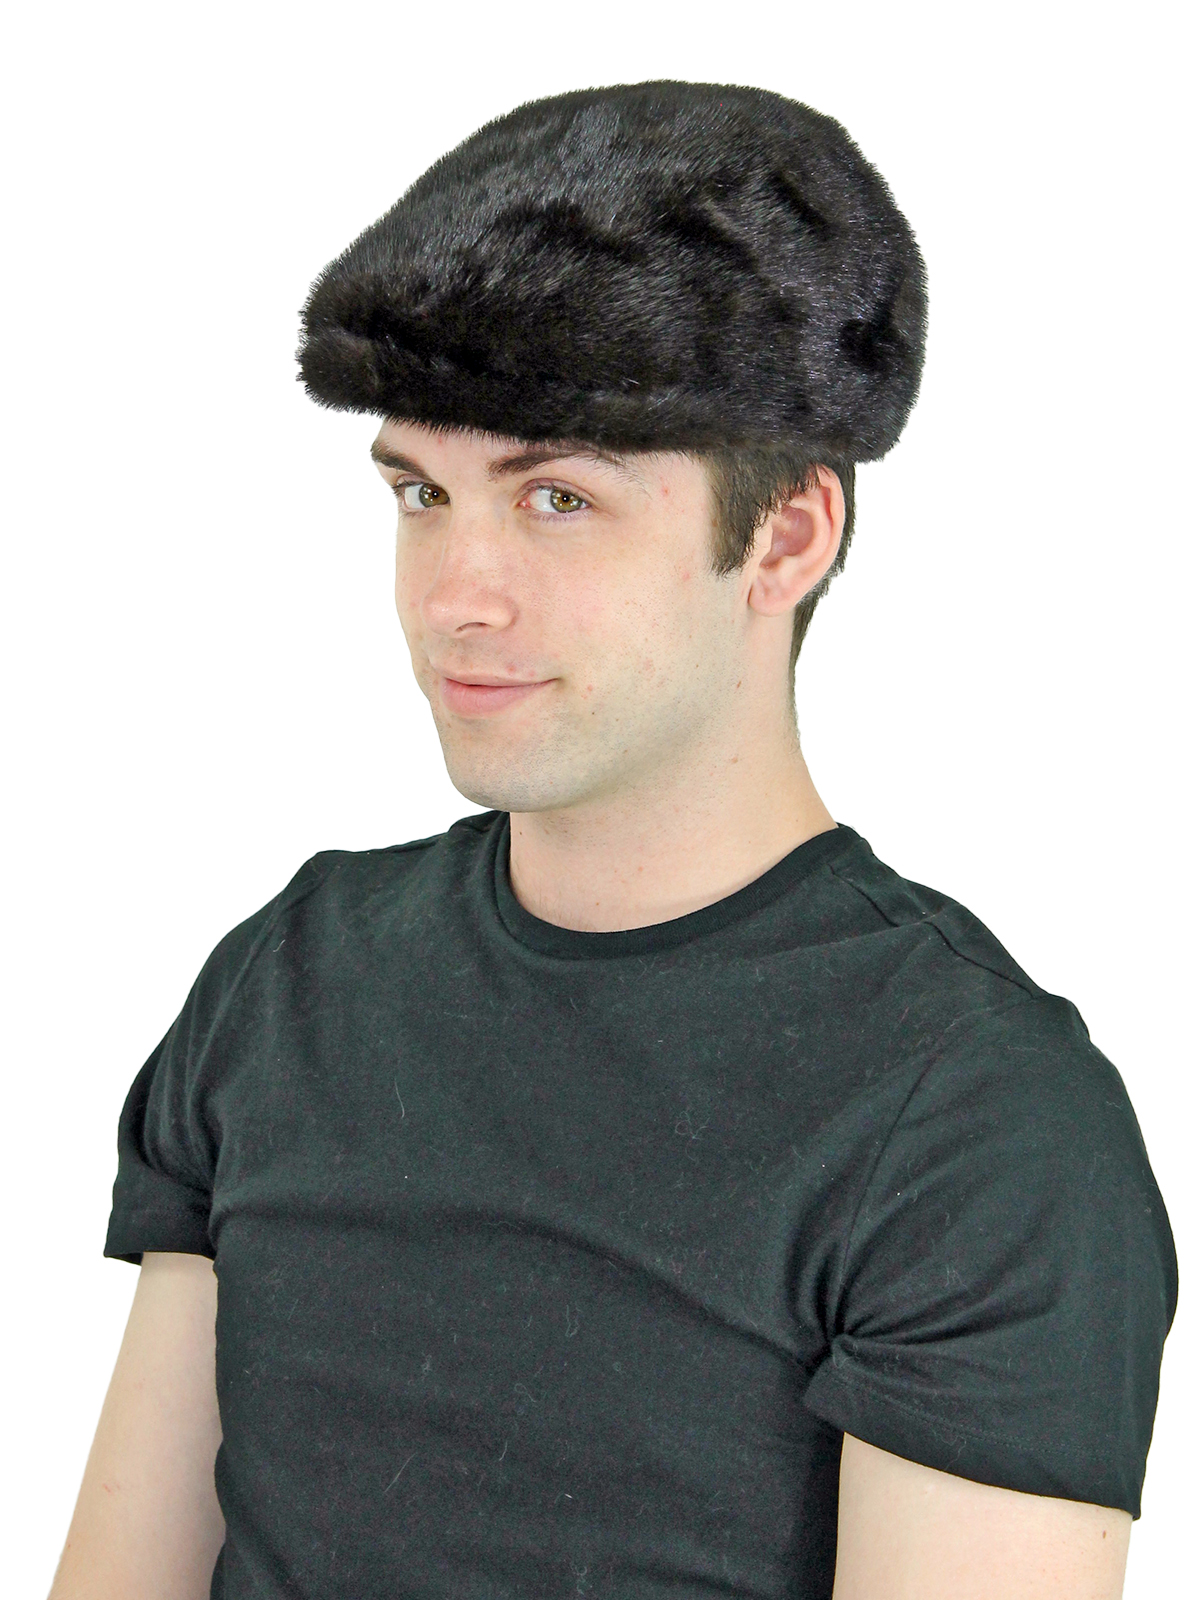 Brown Mink Fur Kangol Hat - Men's Fur Hat - One Size Fits All | Day Furs